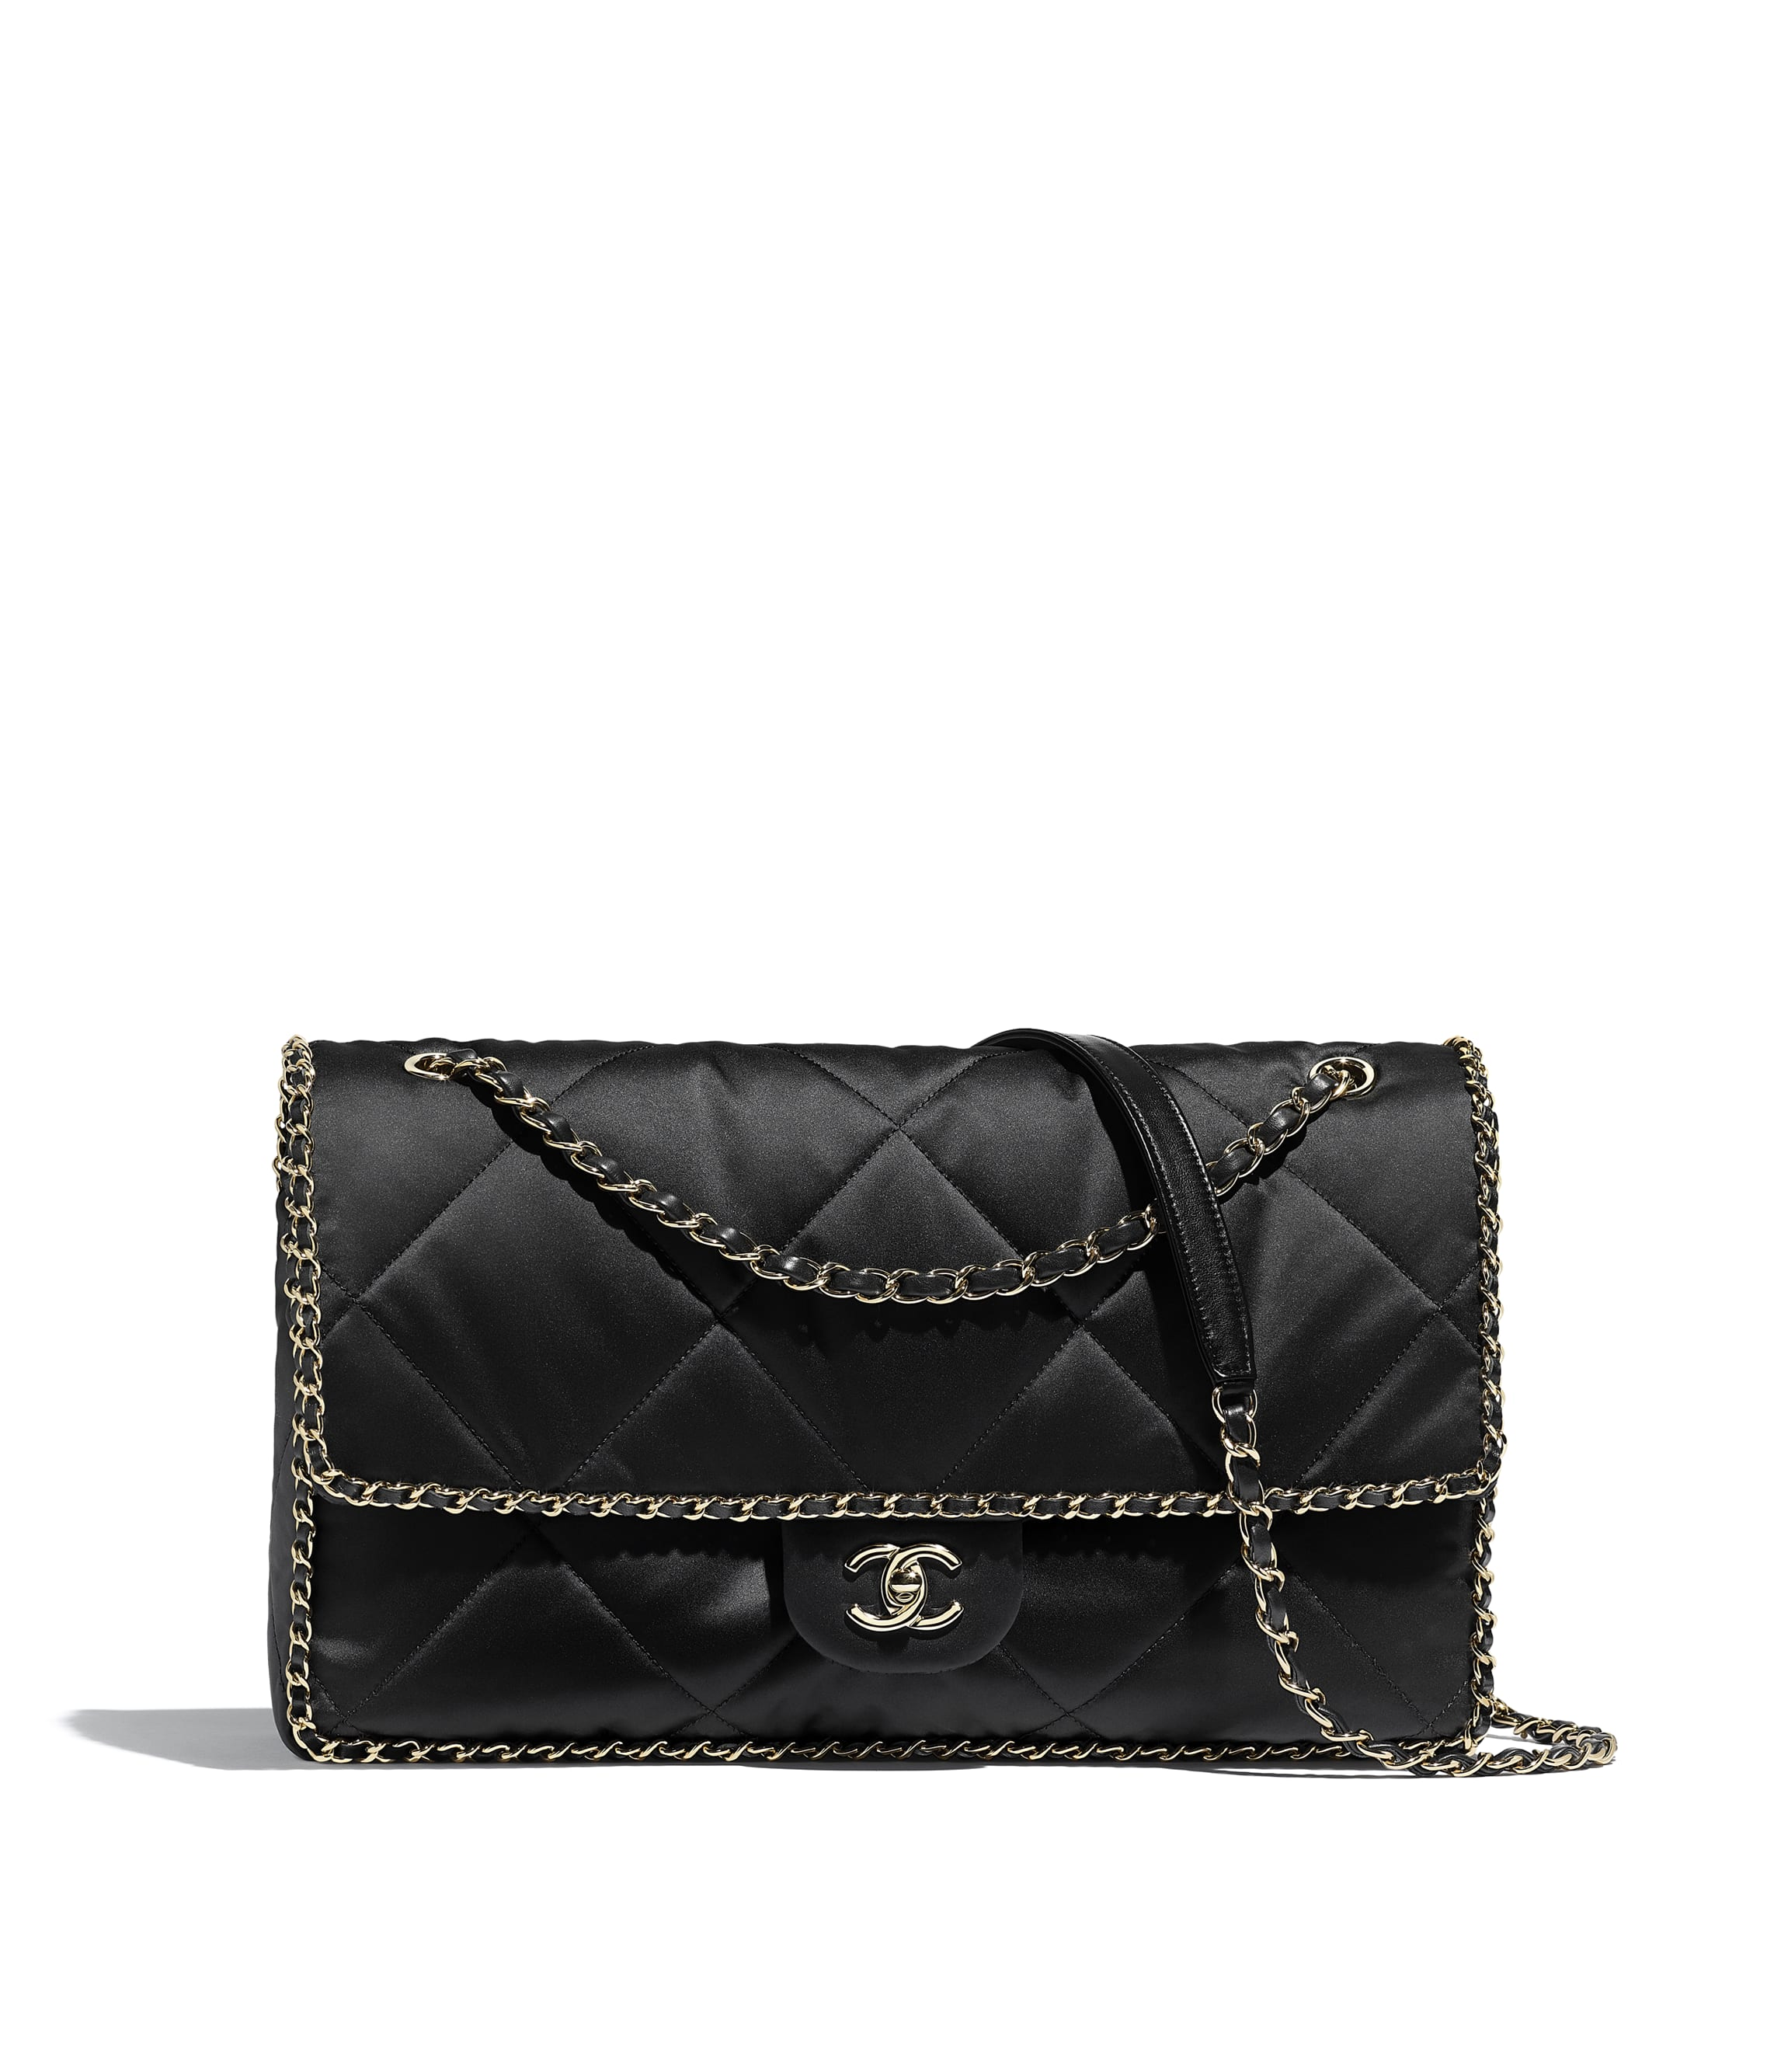 fa1373f9 New This Season - Handbags - CHANEL